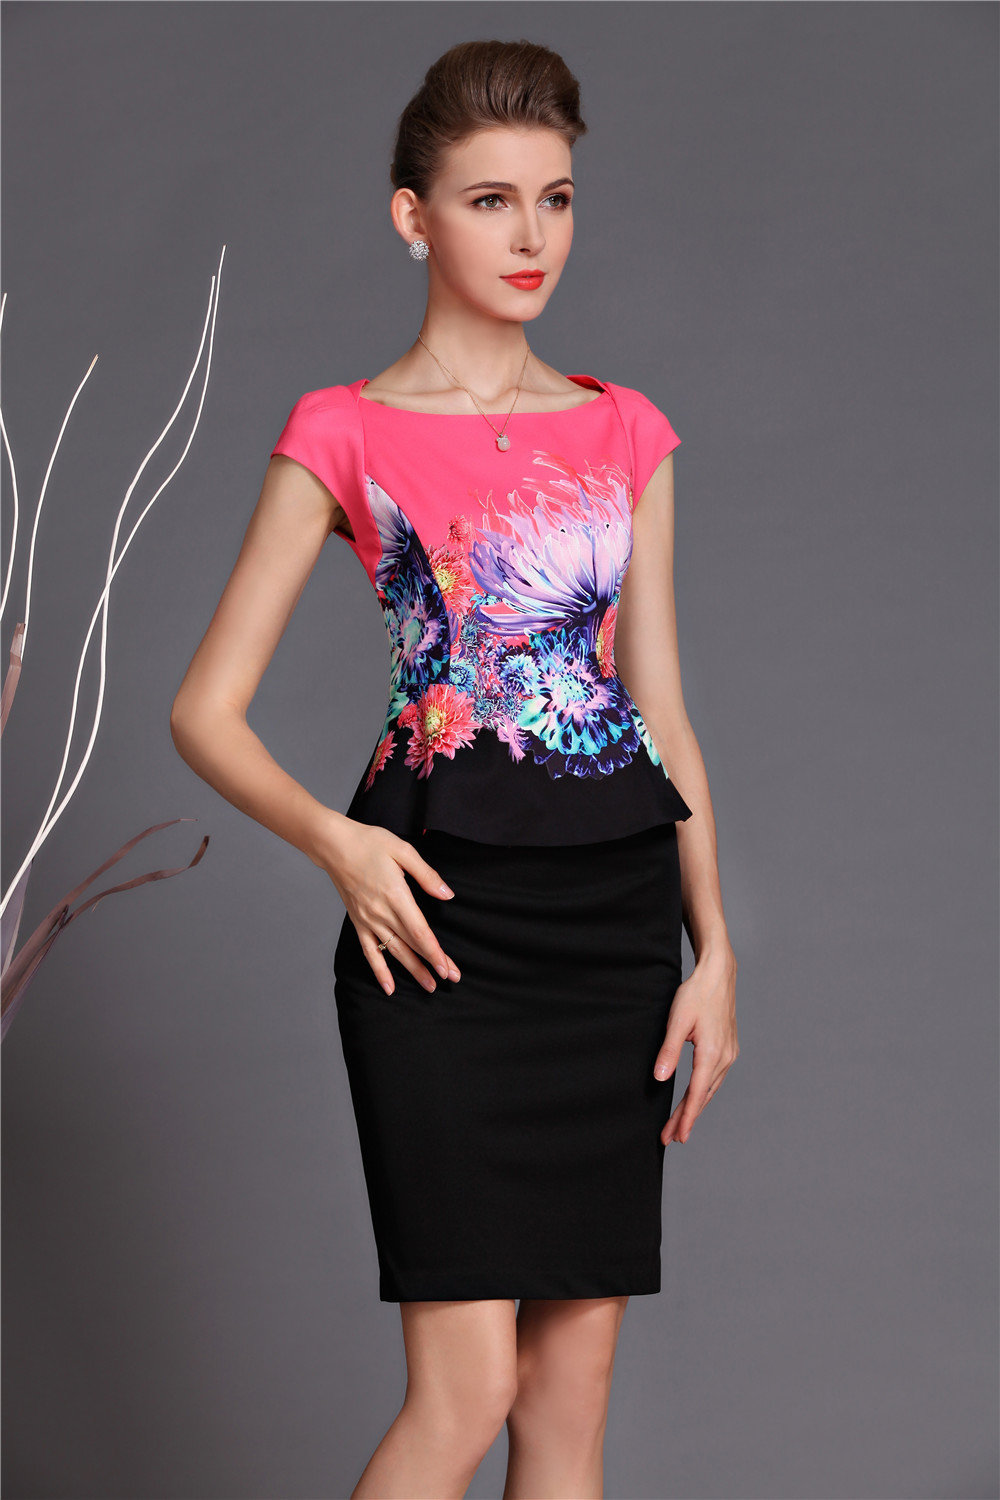 Elegant Mother Dress Business Attire Top and Skirt